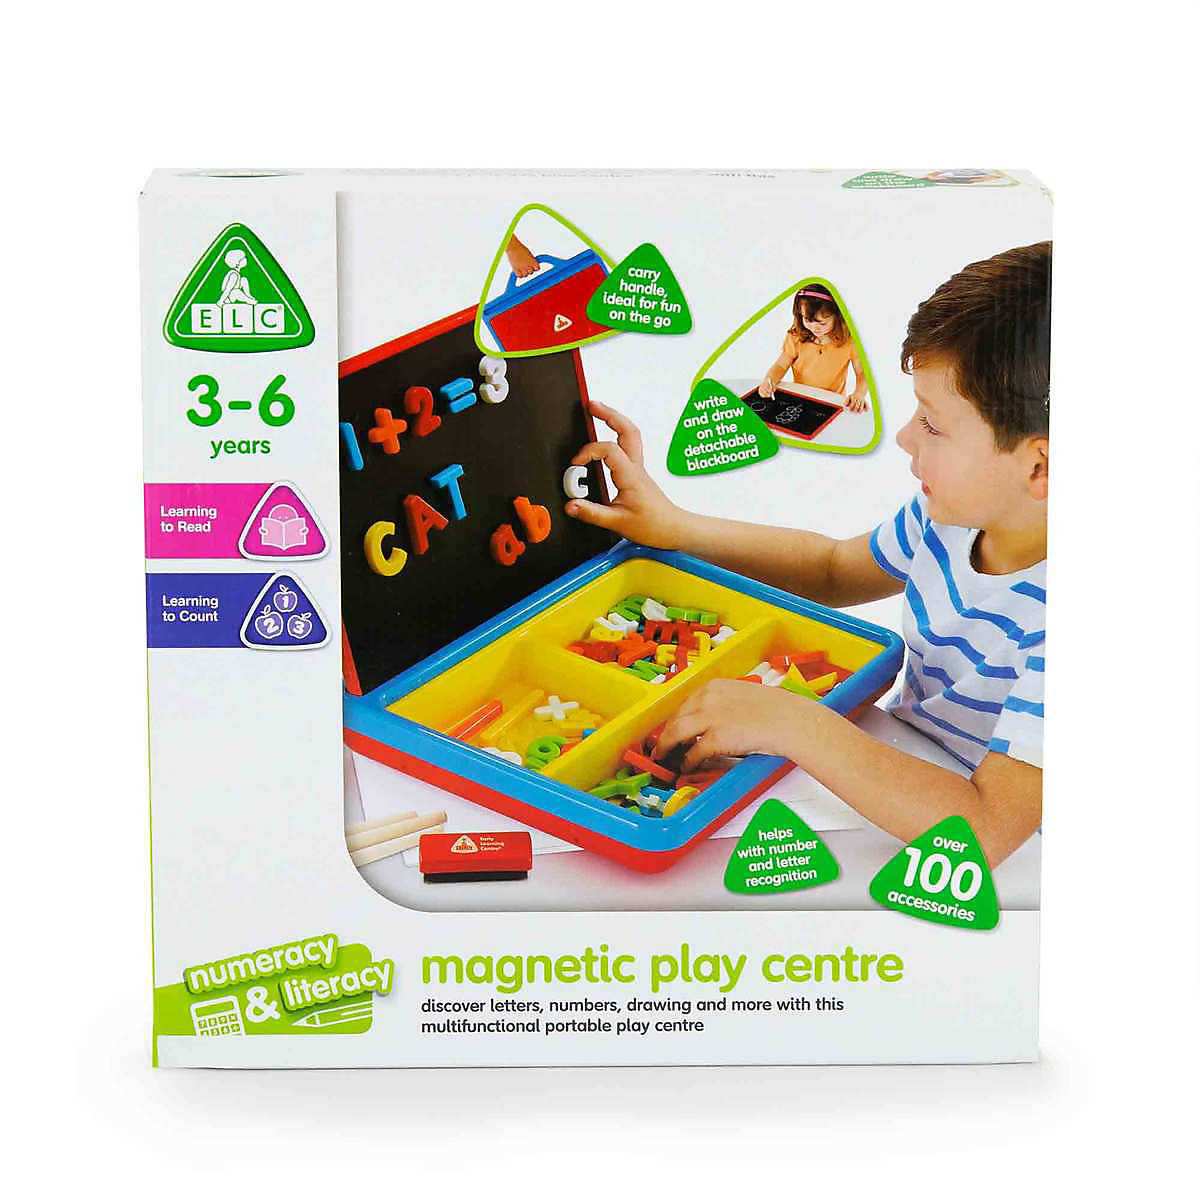 New ELC Boy Magnetic Playcentre   Red Toy From 3 Years